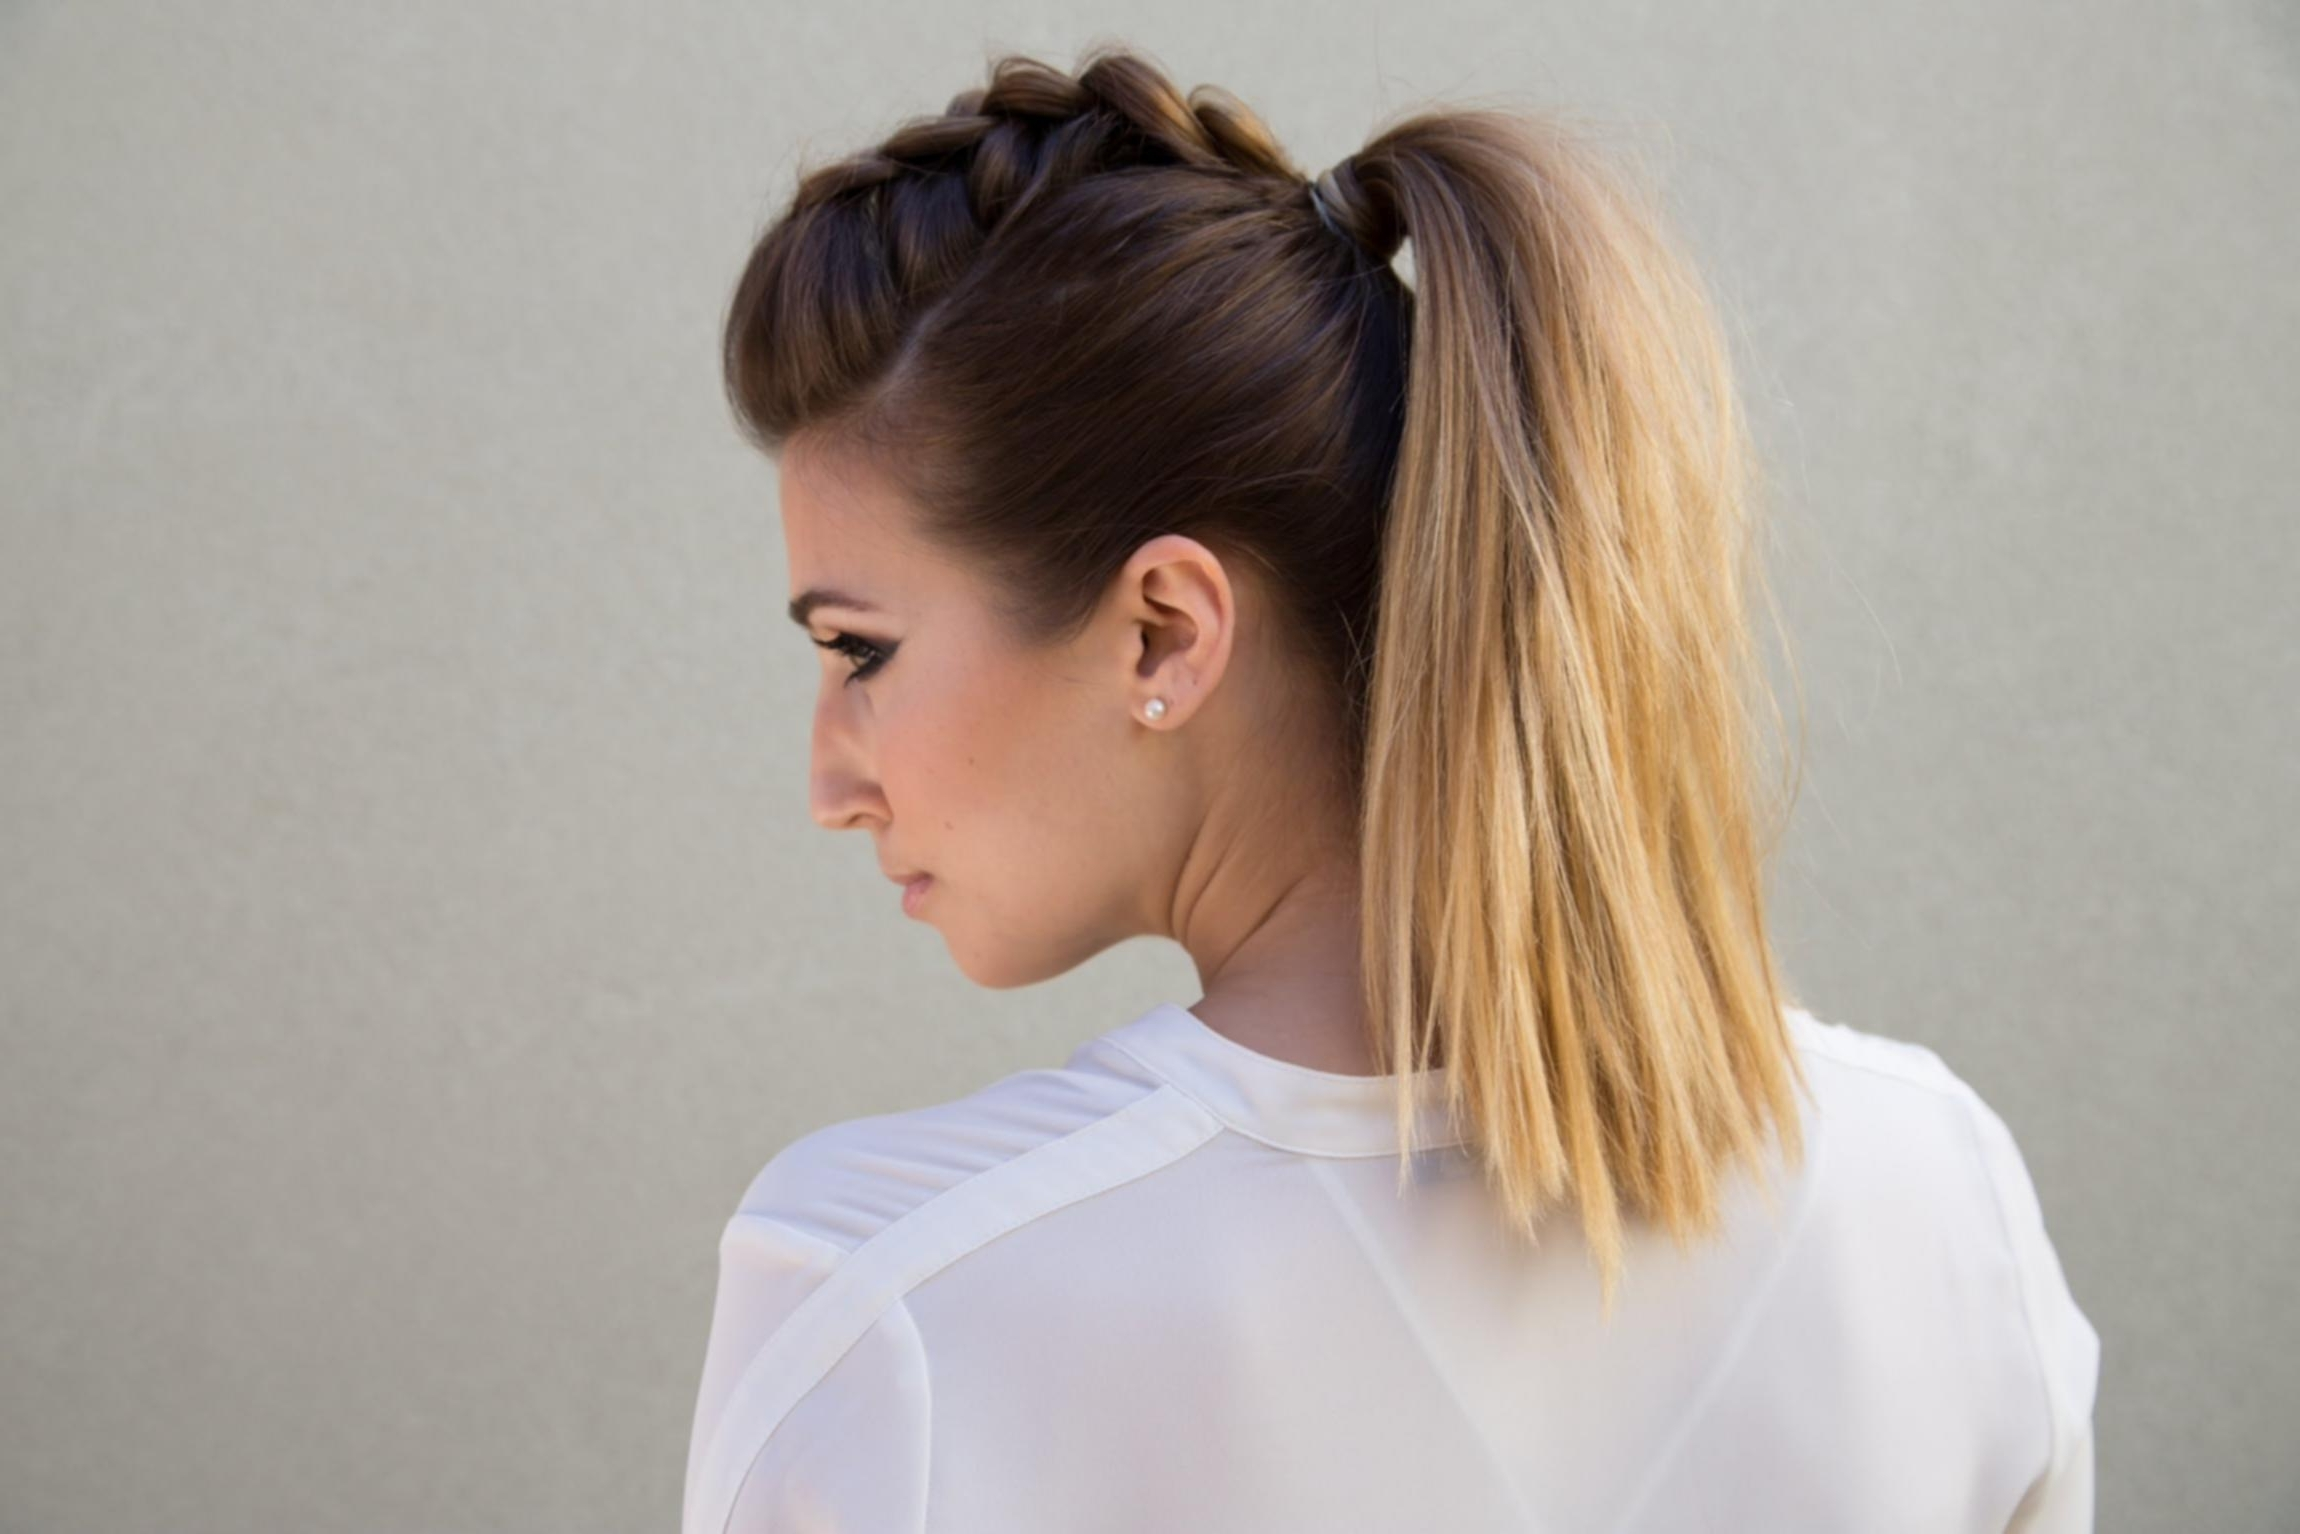 French Braid Into Low Ponytail Bouffant French Braid Ponytail Ideas Pertaining To Famous Bouffant And Braid Ponytail Hairstyles (View 11 of 20)